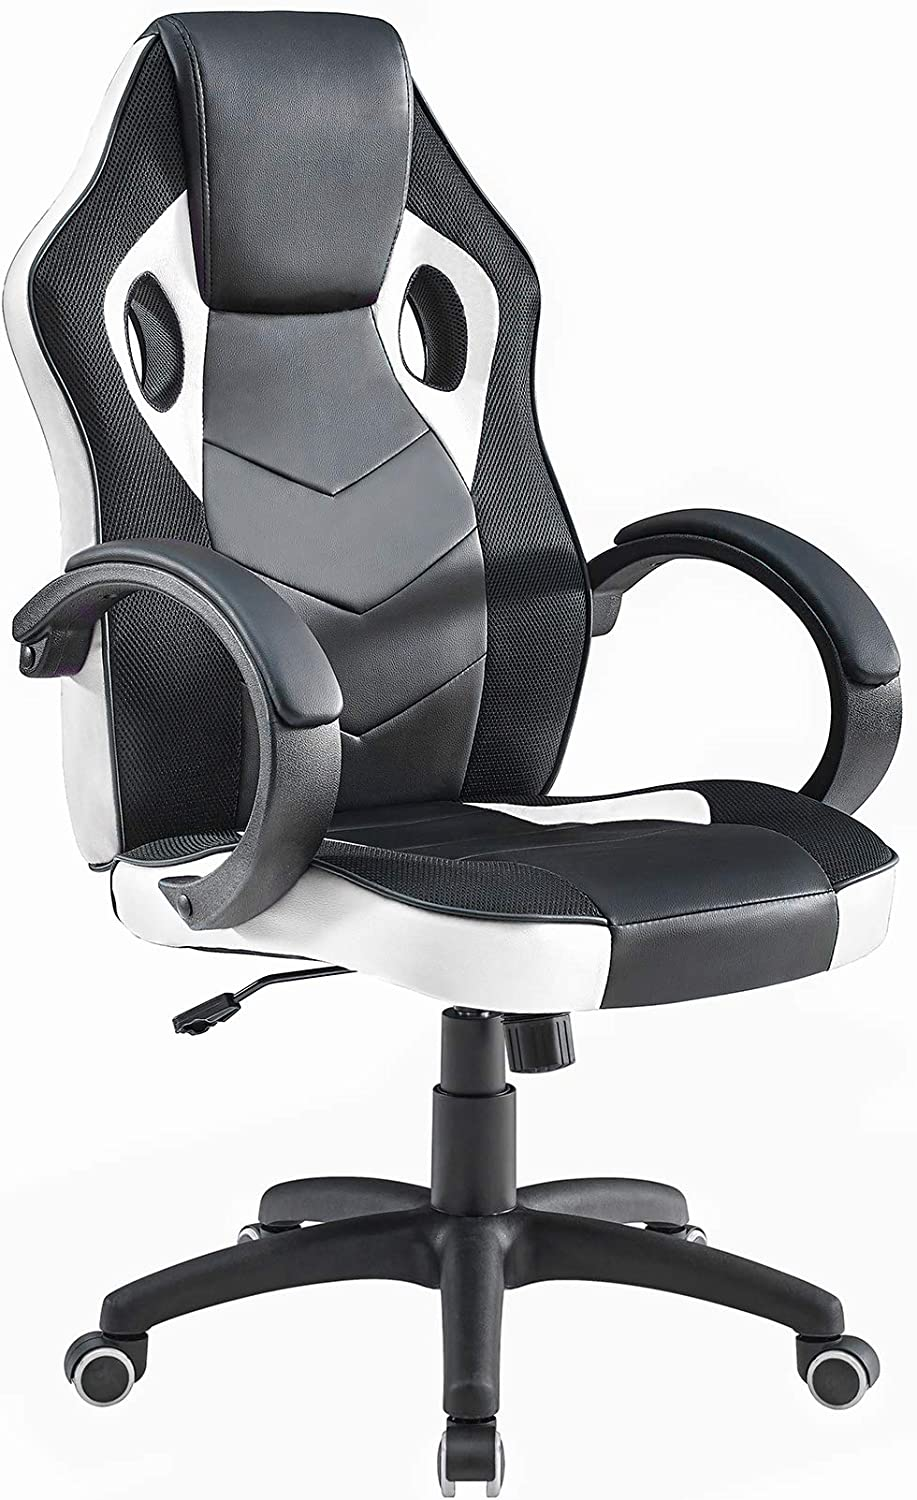 famous Mr IRONSTONE Gaming Chair Office Executive Cheap sale Ergonomic Computer Vi